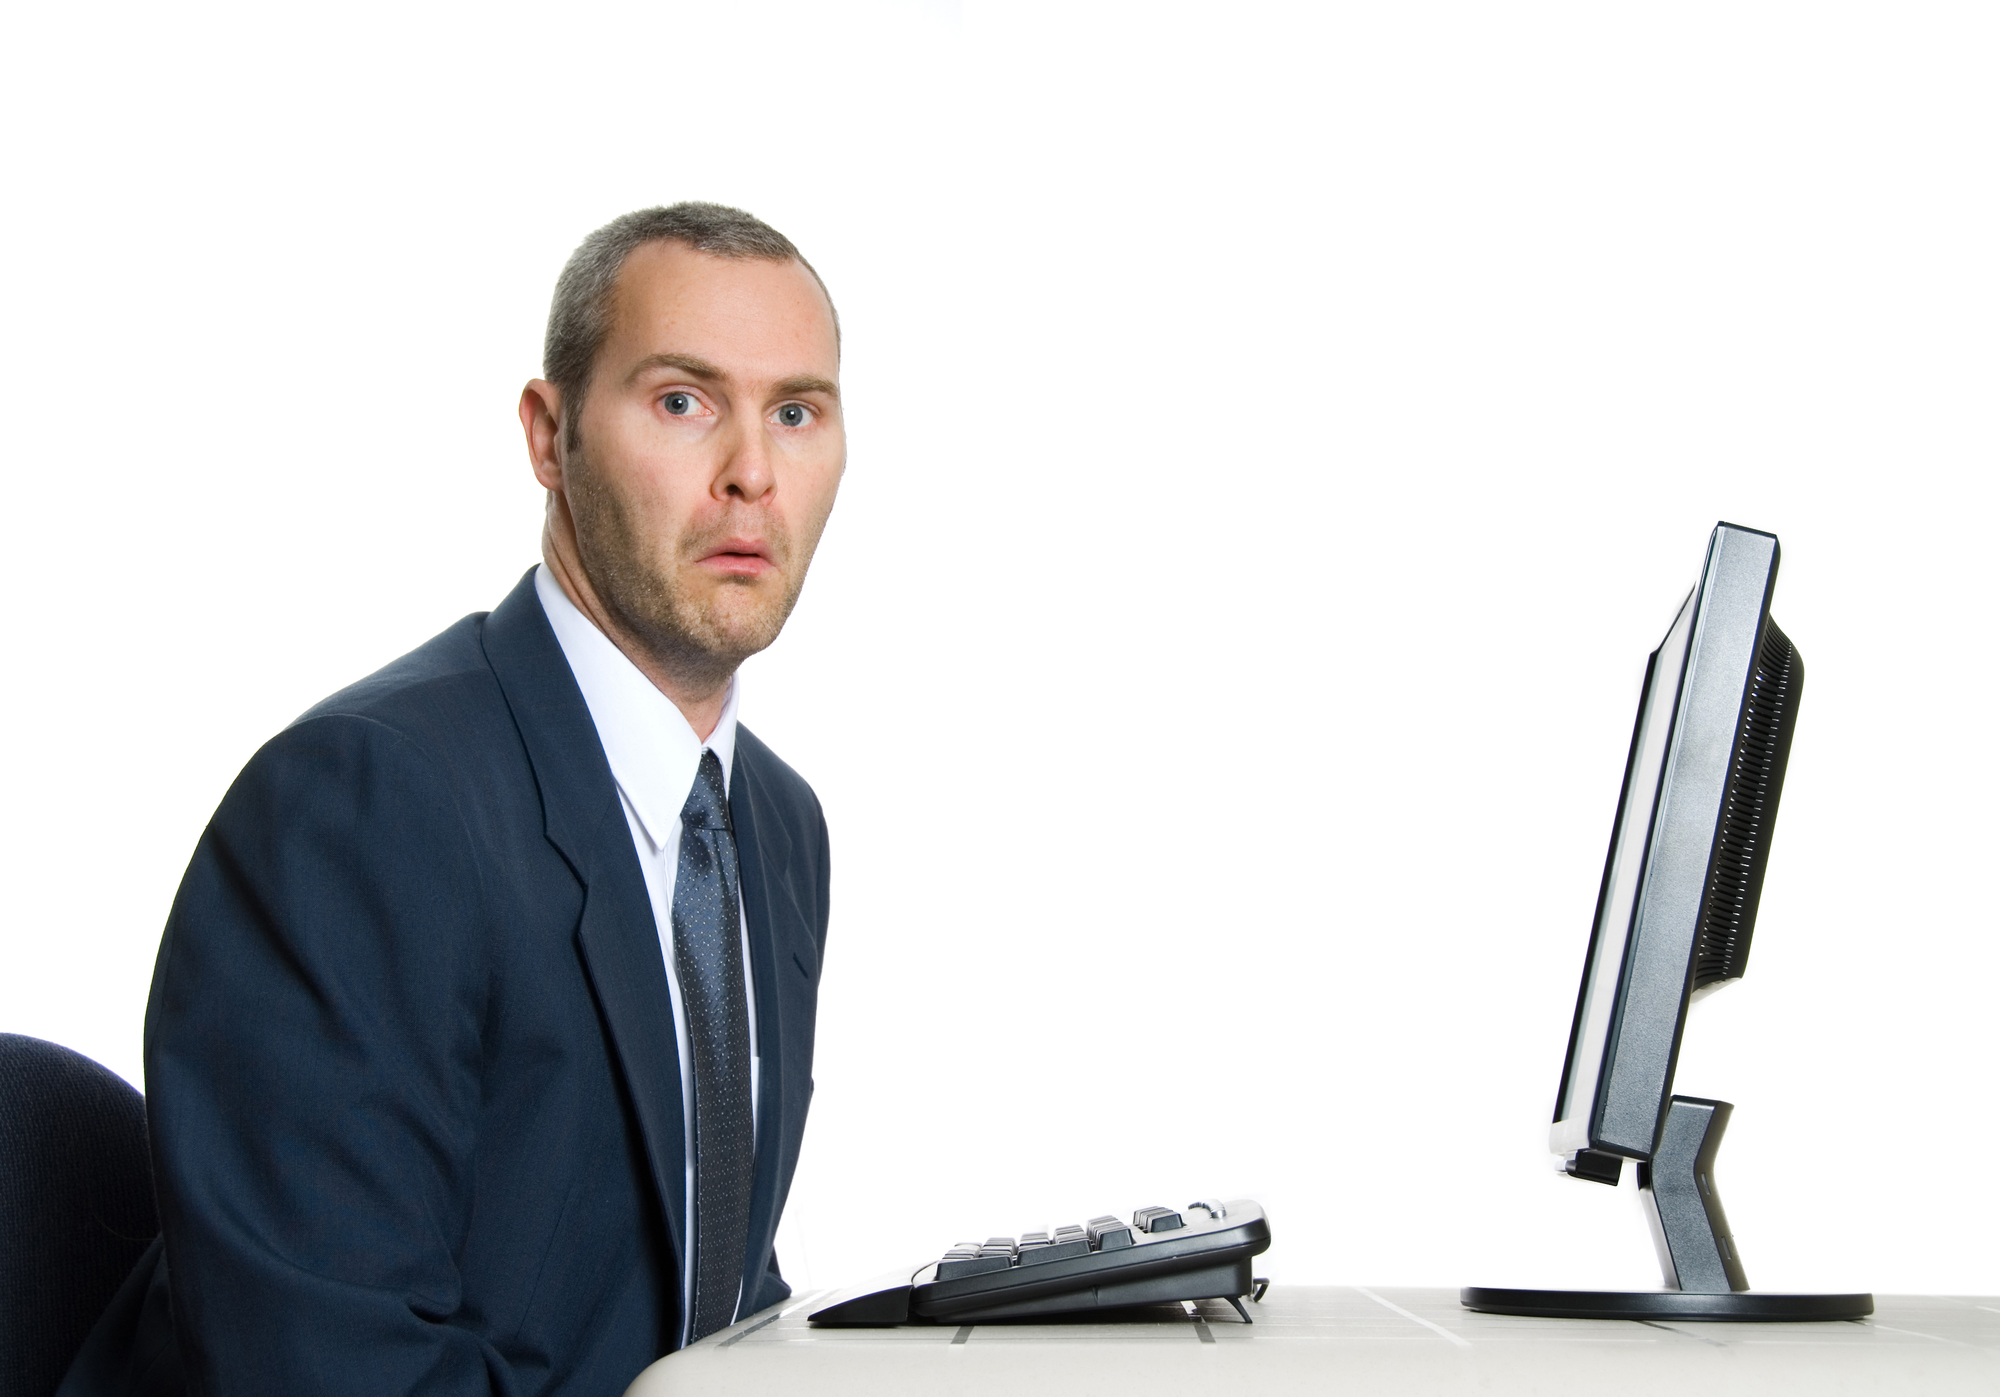 Man unhappy with poor IT support